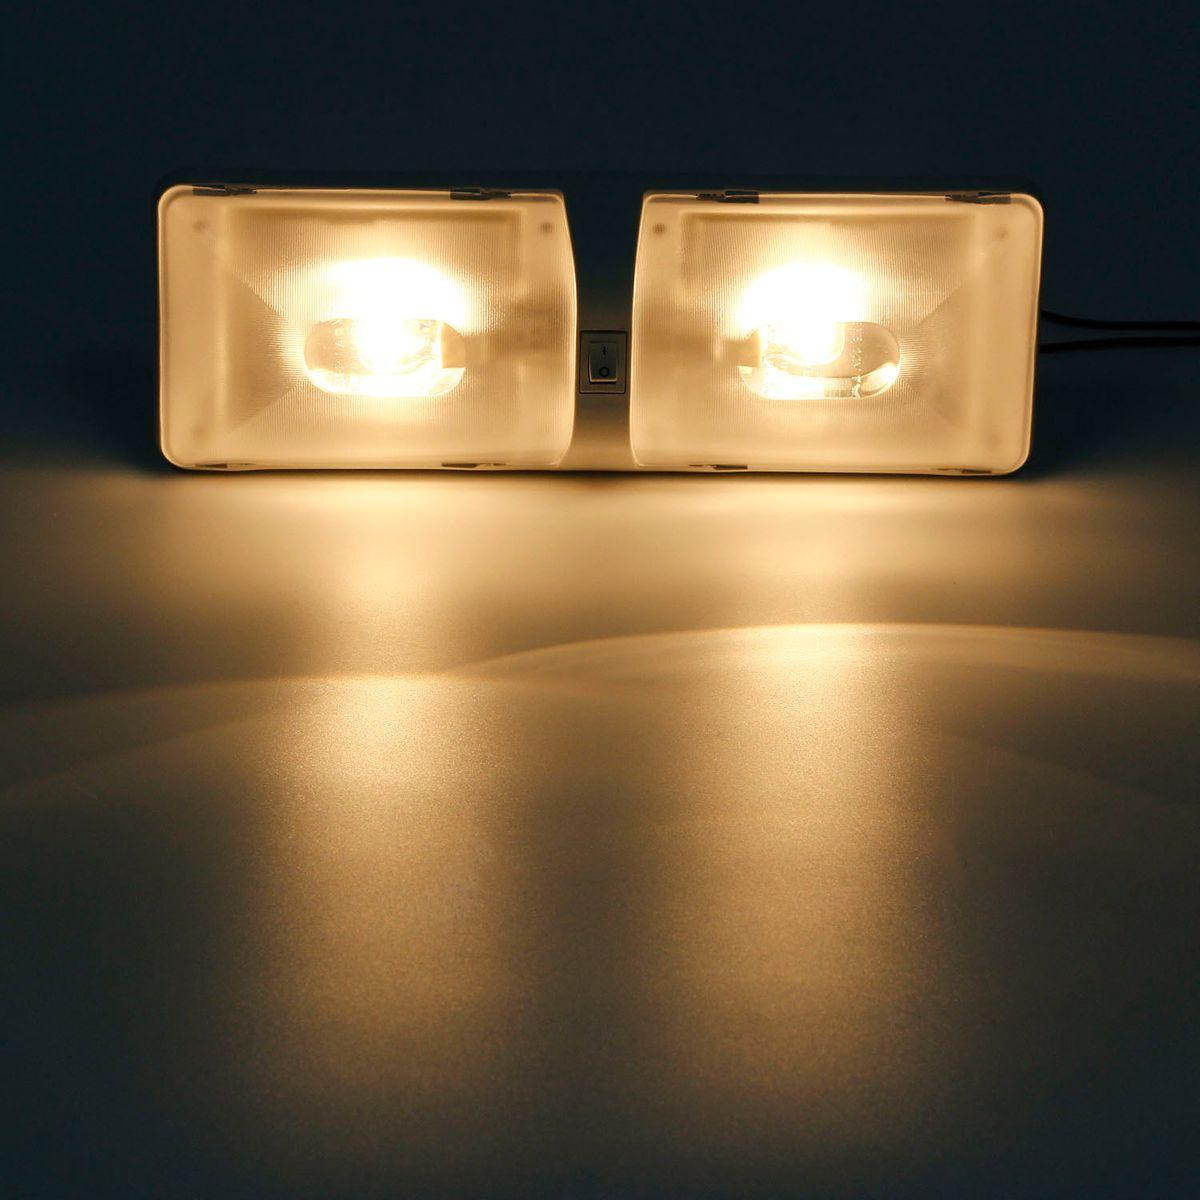 5x warm white rv trailer camper ceiling interior lights for 12v table lamps for boats